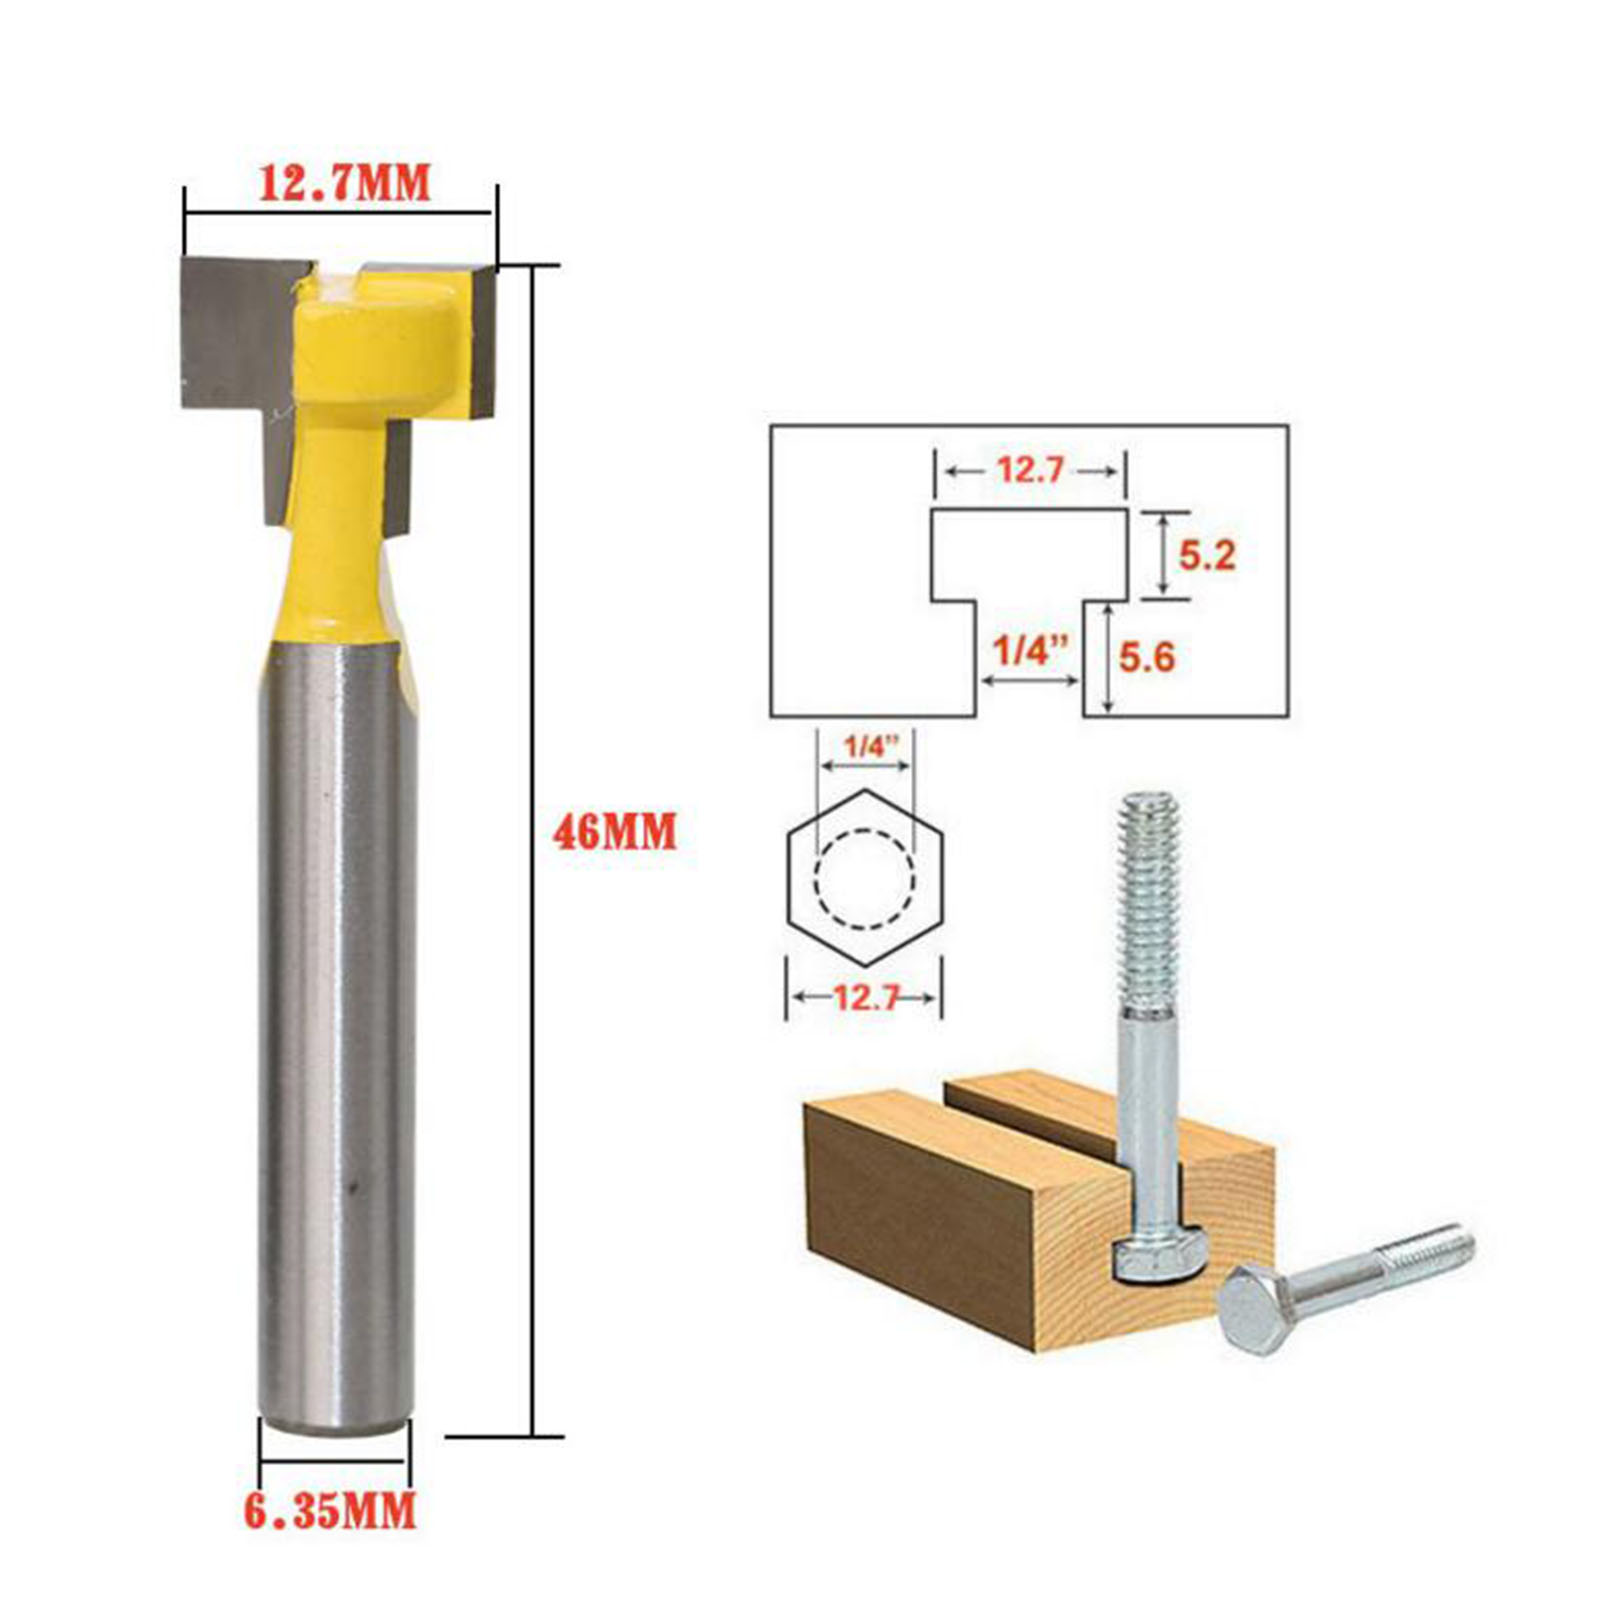 цена на DRELD 1pc Woodworking Tool 1/4 Inch Shank Carbide T Slot Lock Hole Cutter Router Bit Wood Milling Cutter Tool 1/2inch Diameter